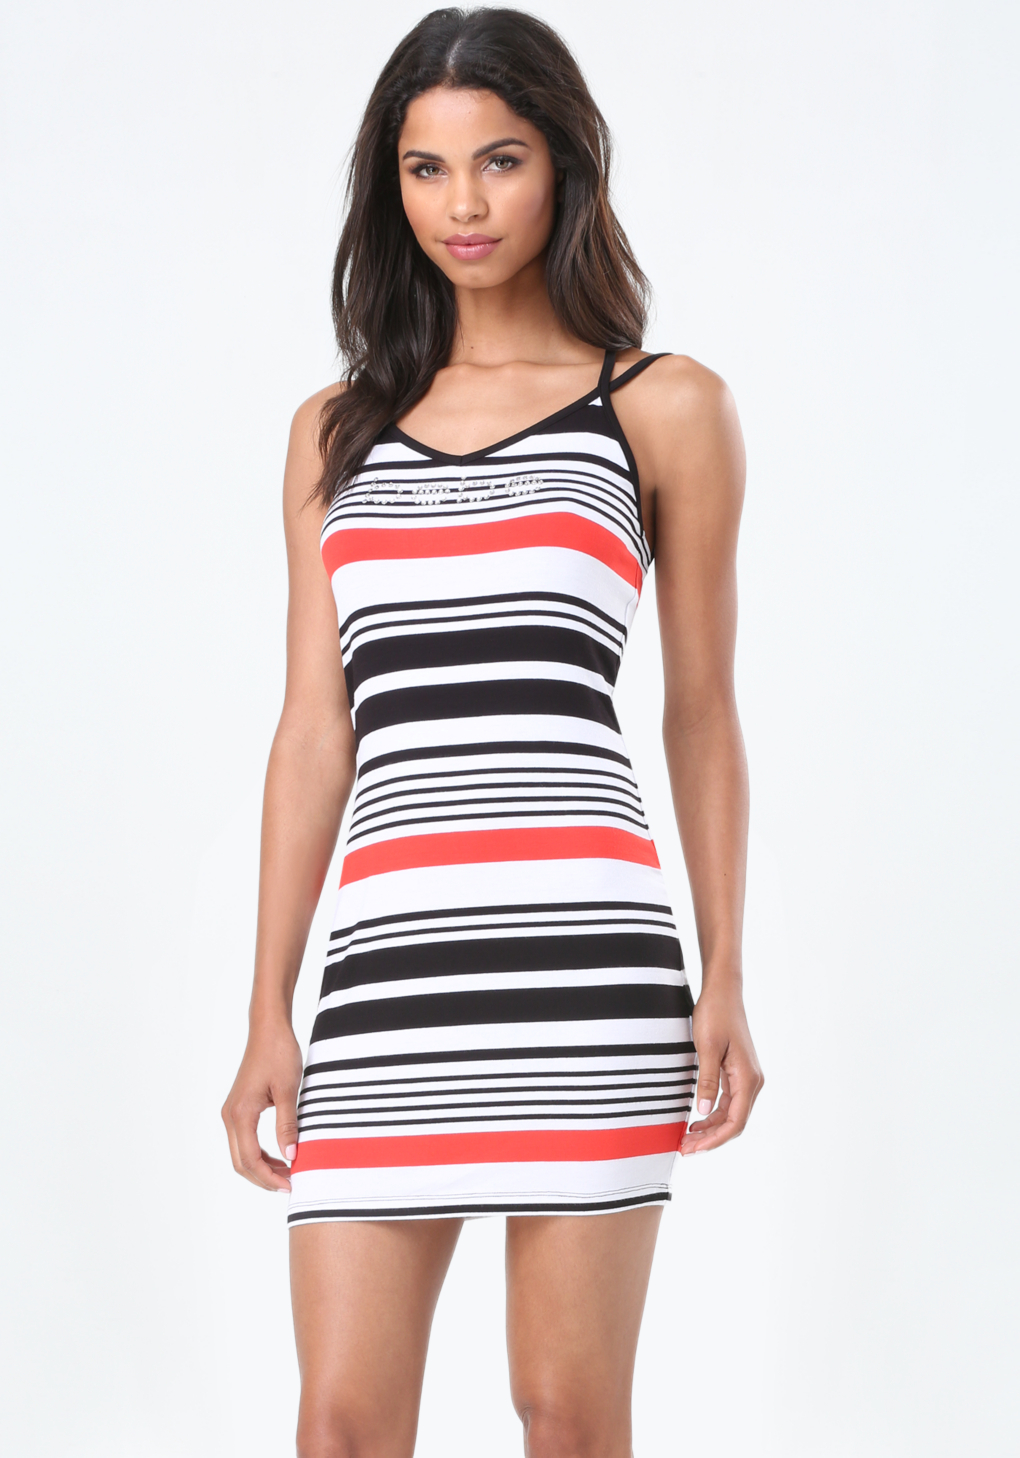 Find great deals on eBay for bebe striped dress. Shop with confidence.